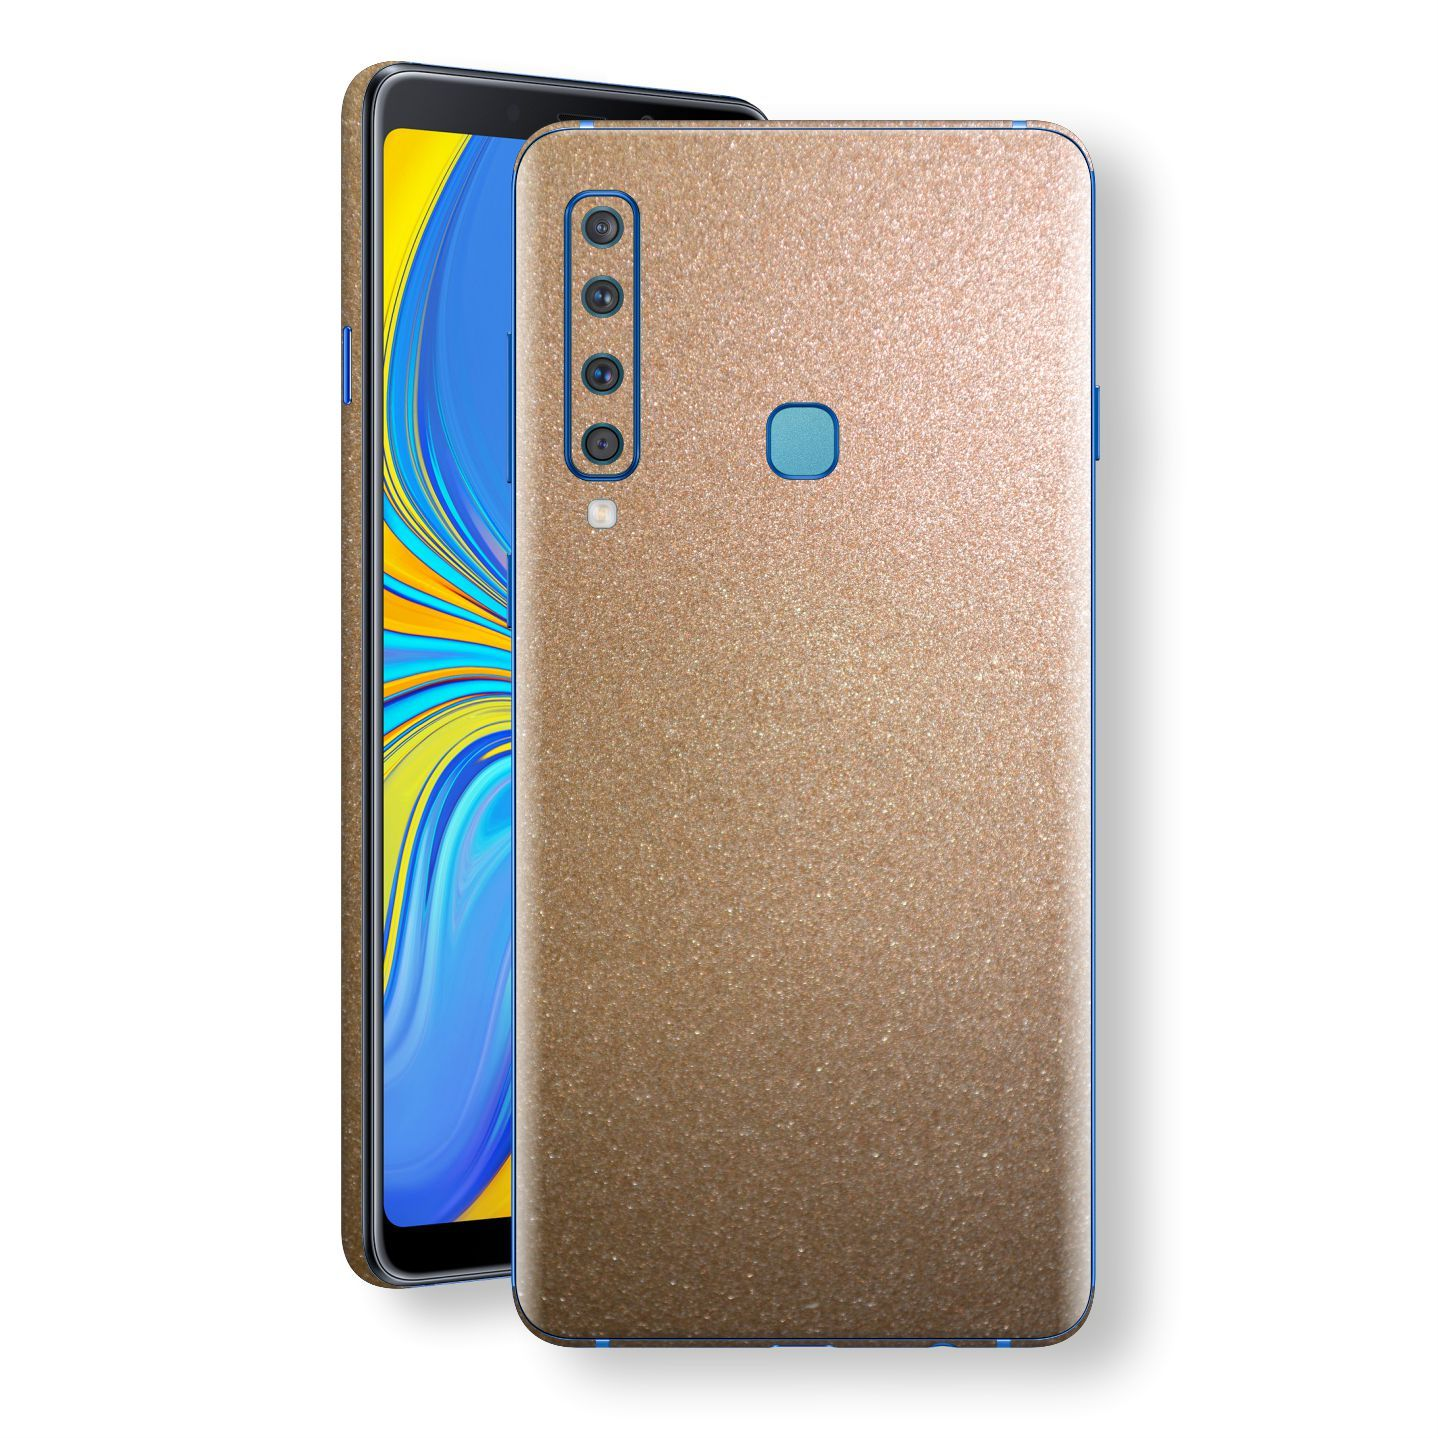 Samsung Galaxy A9 (2018) Antique Bronze Metallic Skin, Decal, Wrap, Protector, Cover by EasySkinz | EasySkinz.com